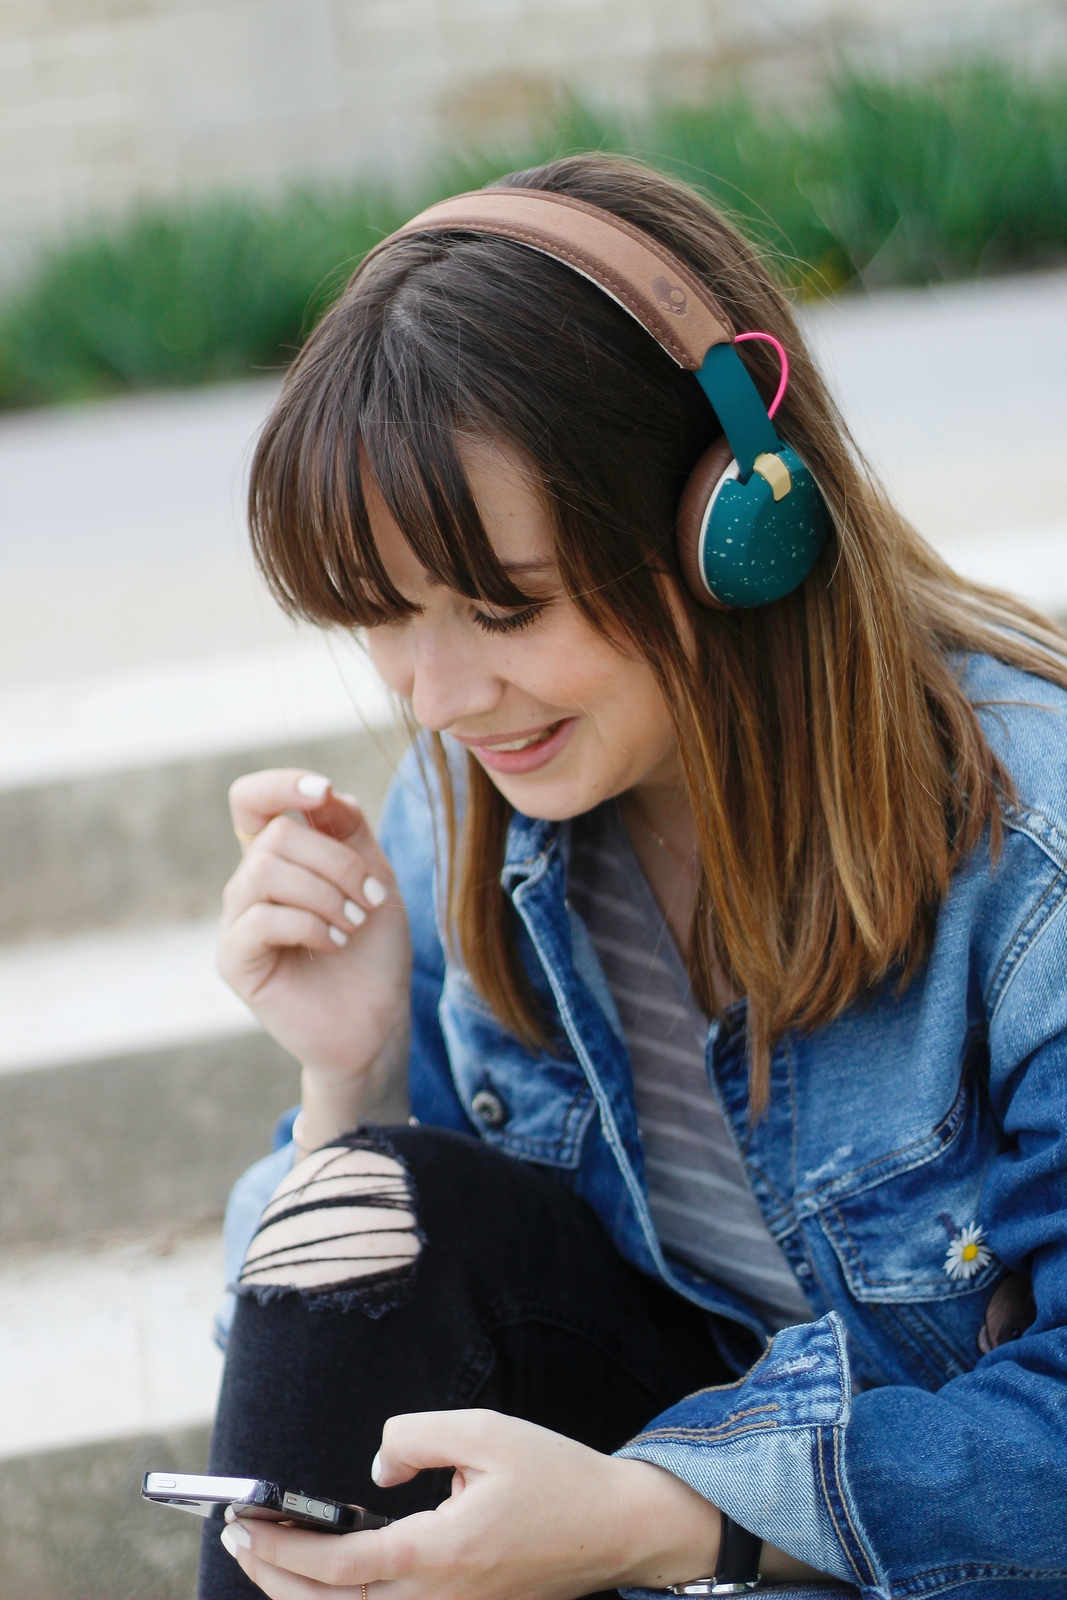 Blog mode femme Paris - Du style, Madame - skullcandy - Grind Wireless